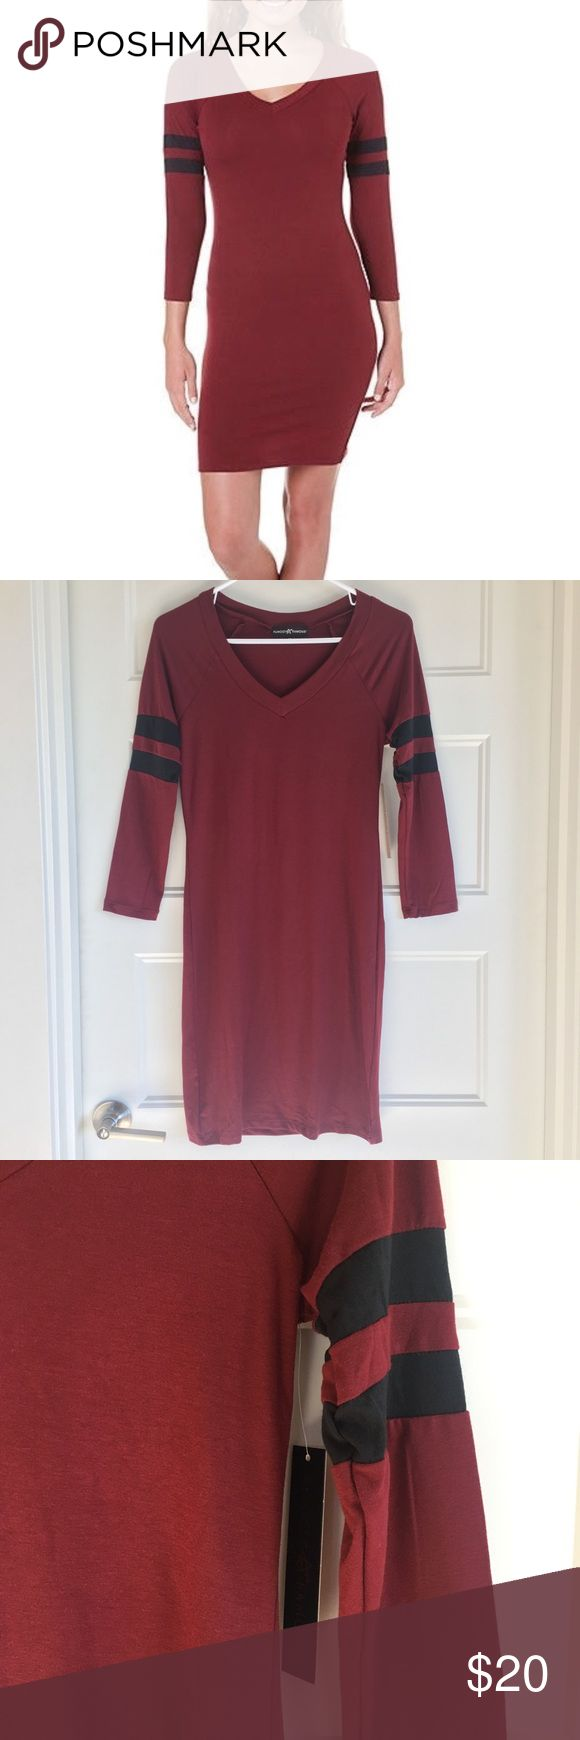 Almost Famous Dress New with tags dress by Almost Famous, size medium (Juniors). Above the knee, long sleeved dress with varsity stripes on the sleeves. Burgundy with black stripes. Super flattering! Almost Famous Dresses